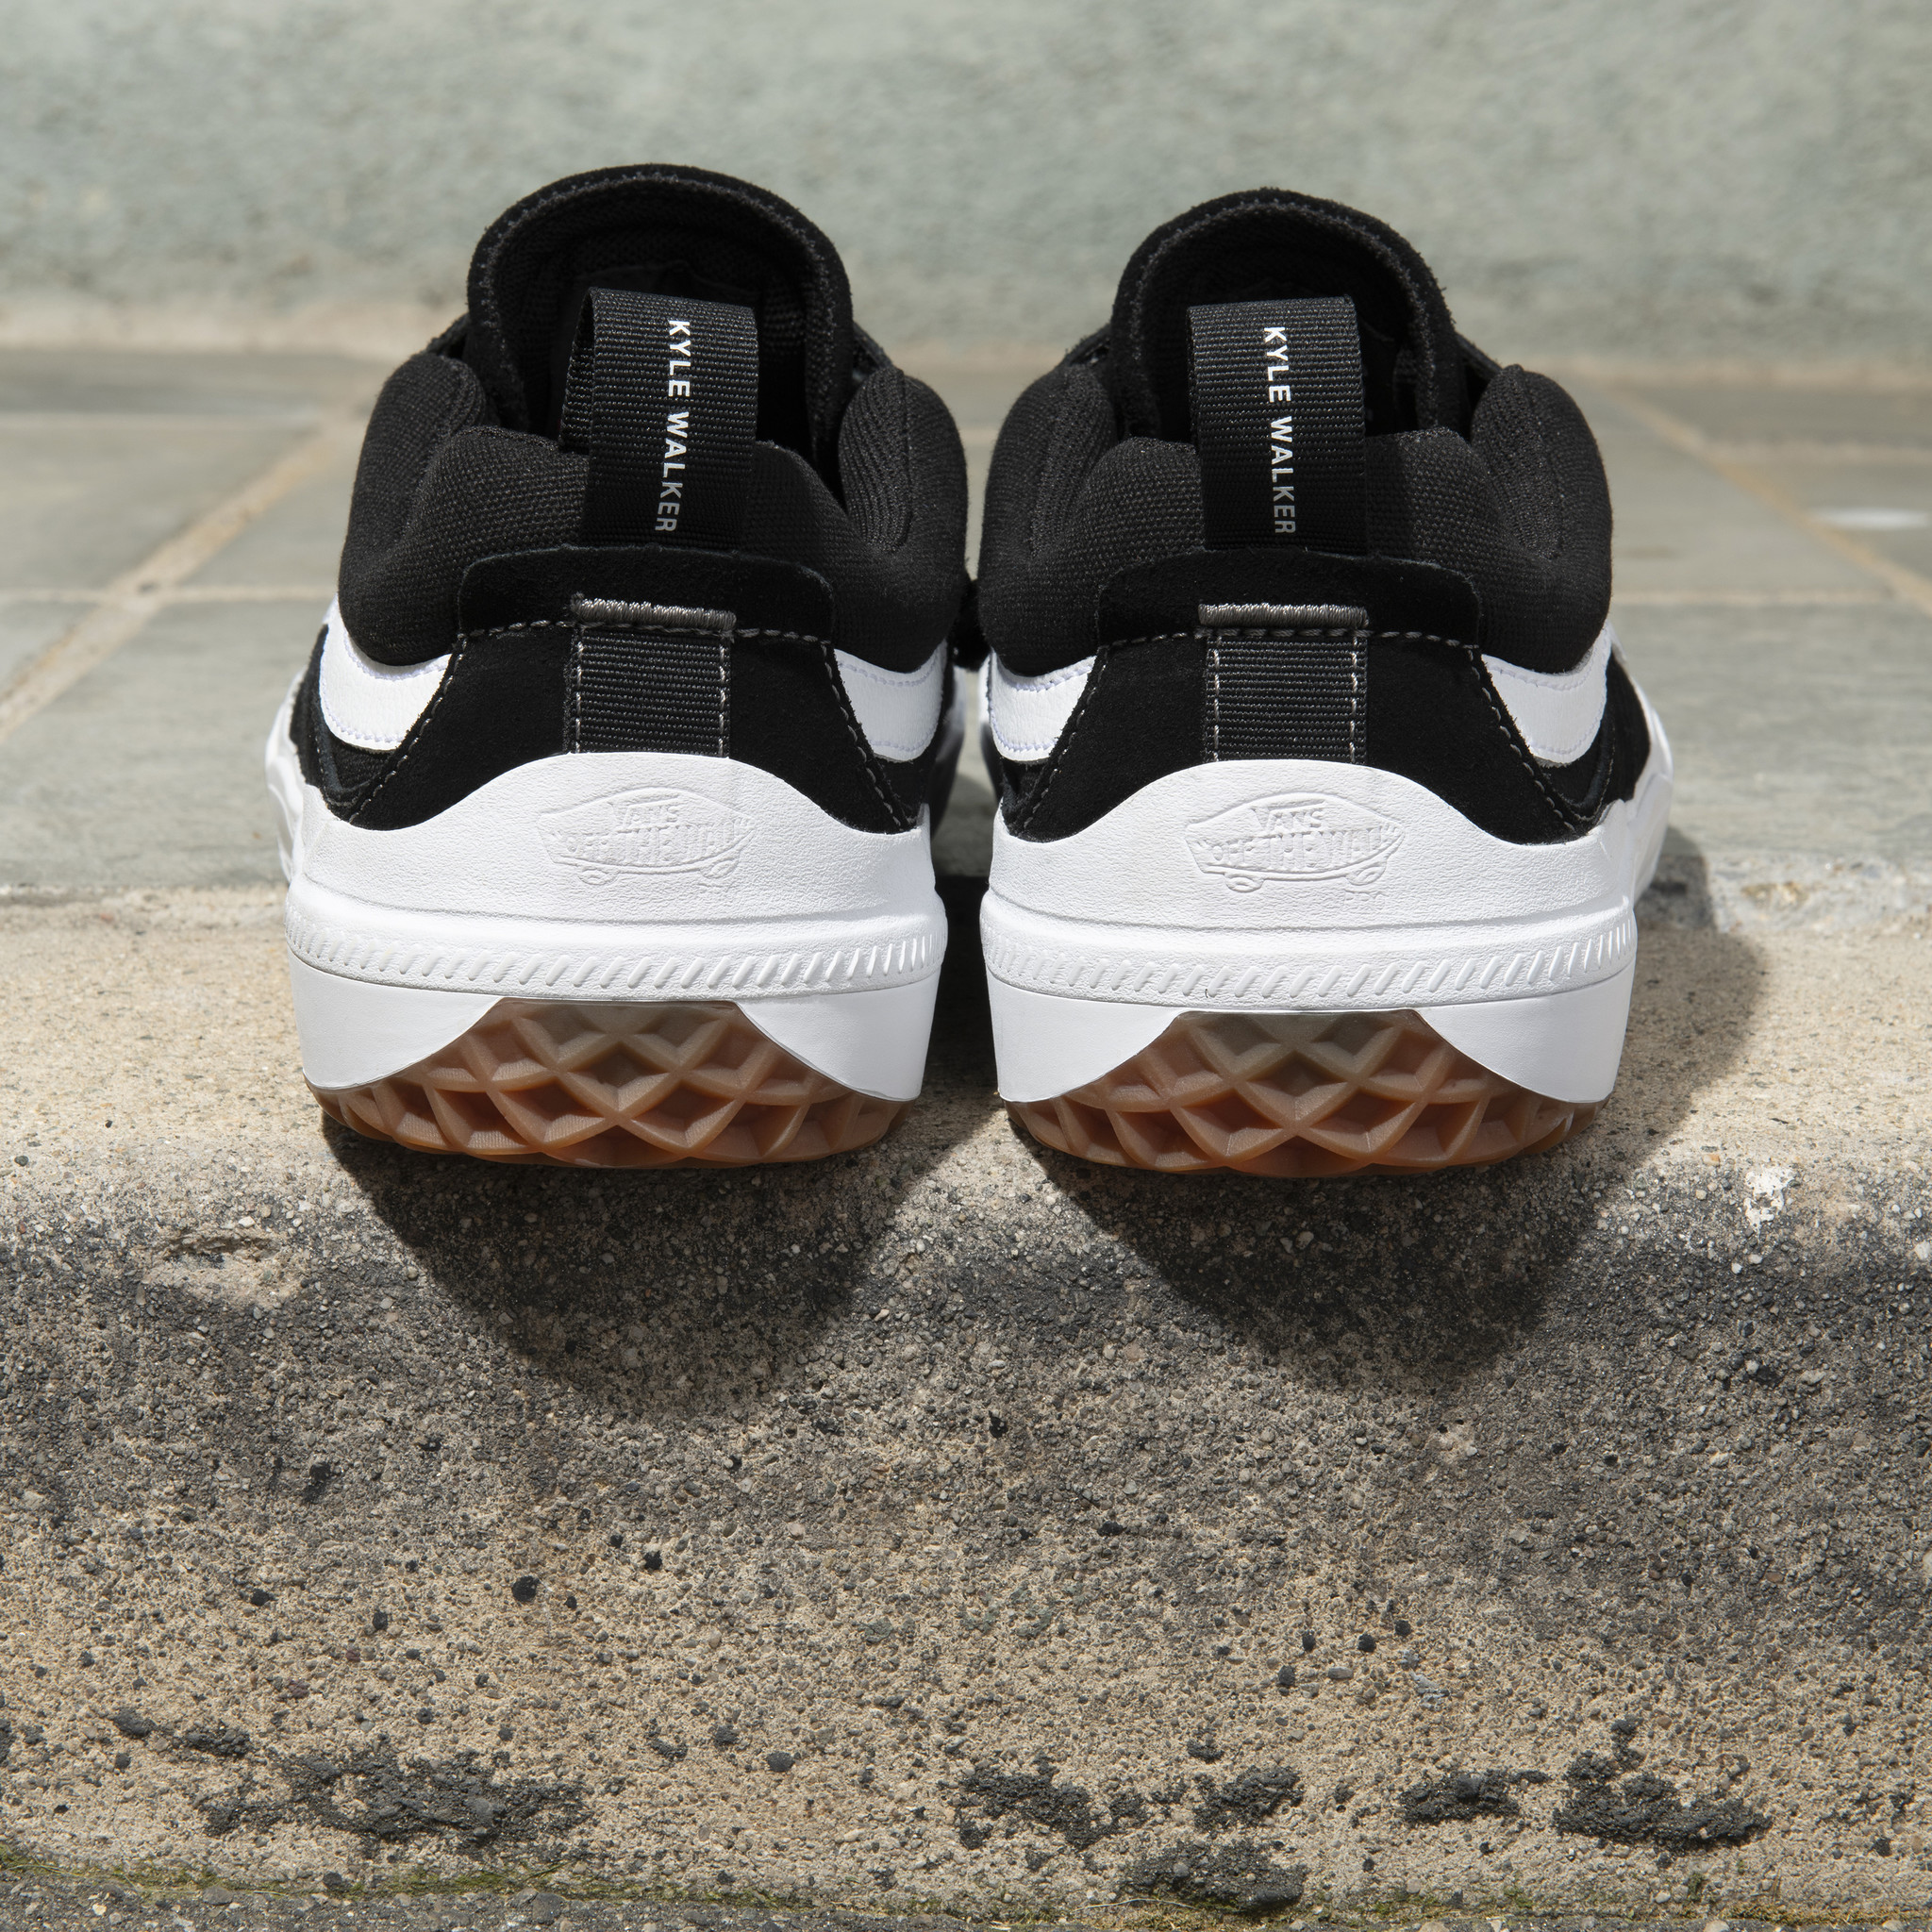 Vans Kyle Walker Pro 2 Shoes Online Canada black white